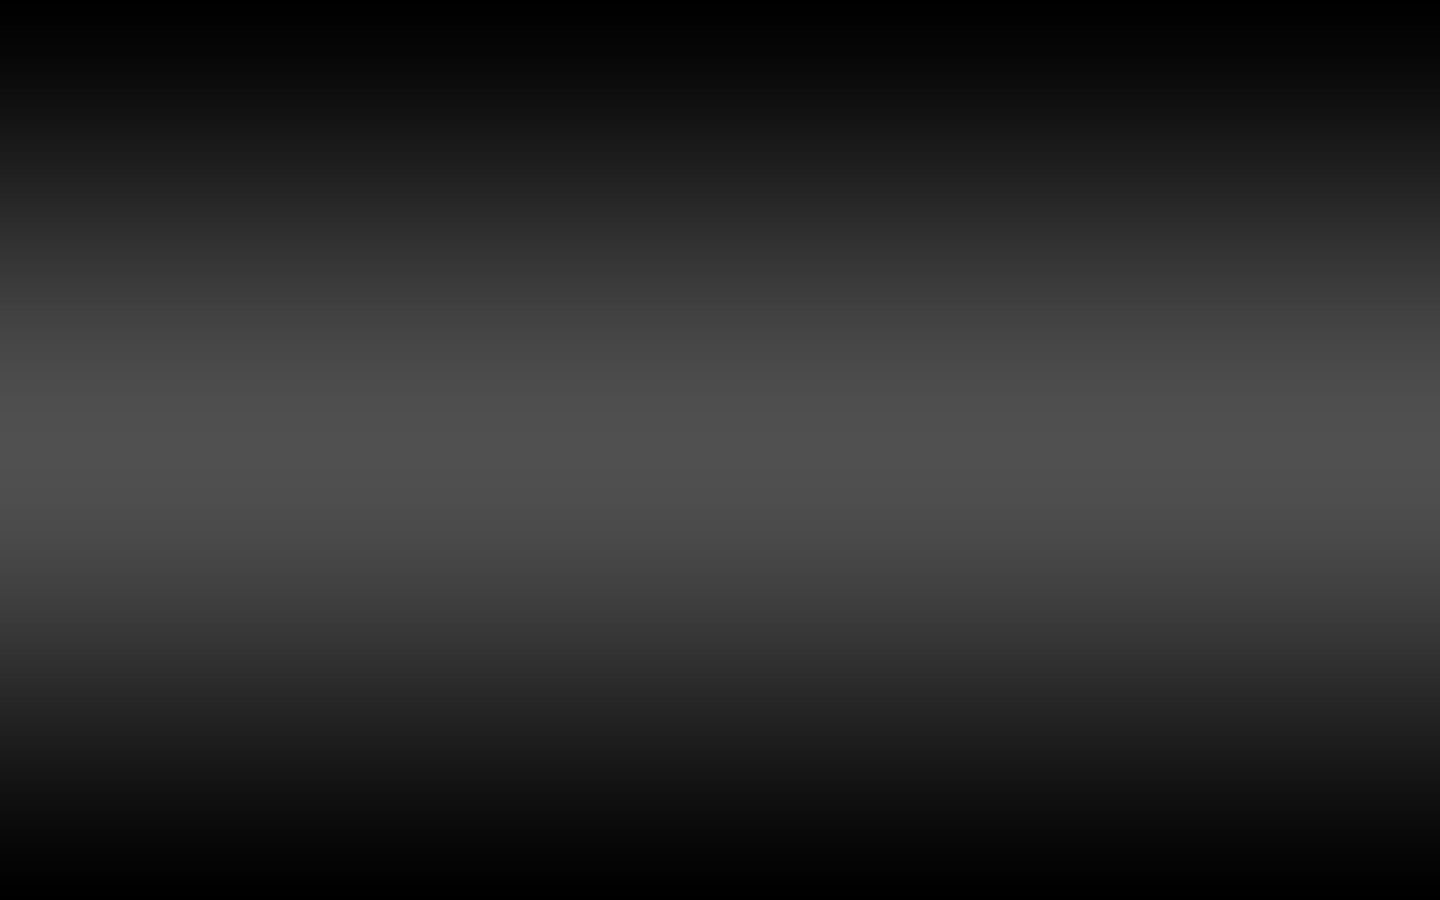 black grey gradient background for web